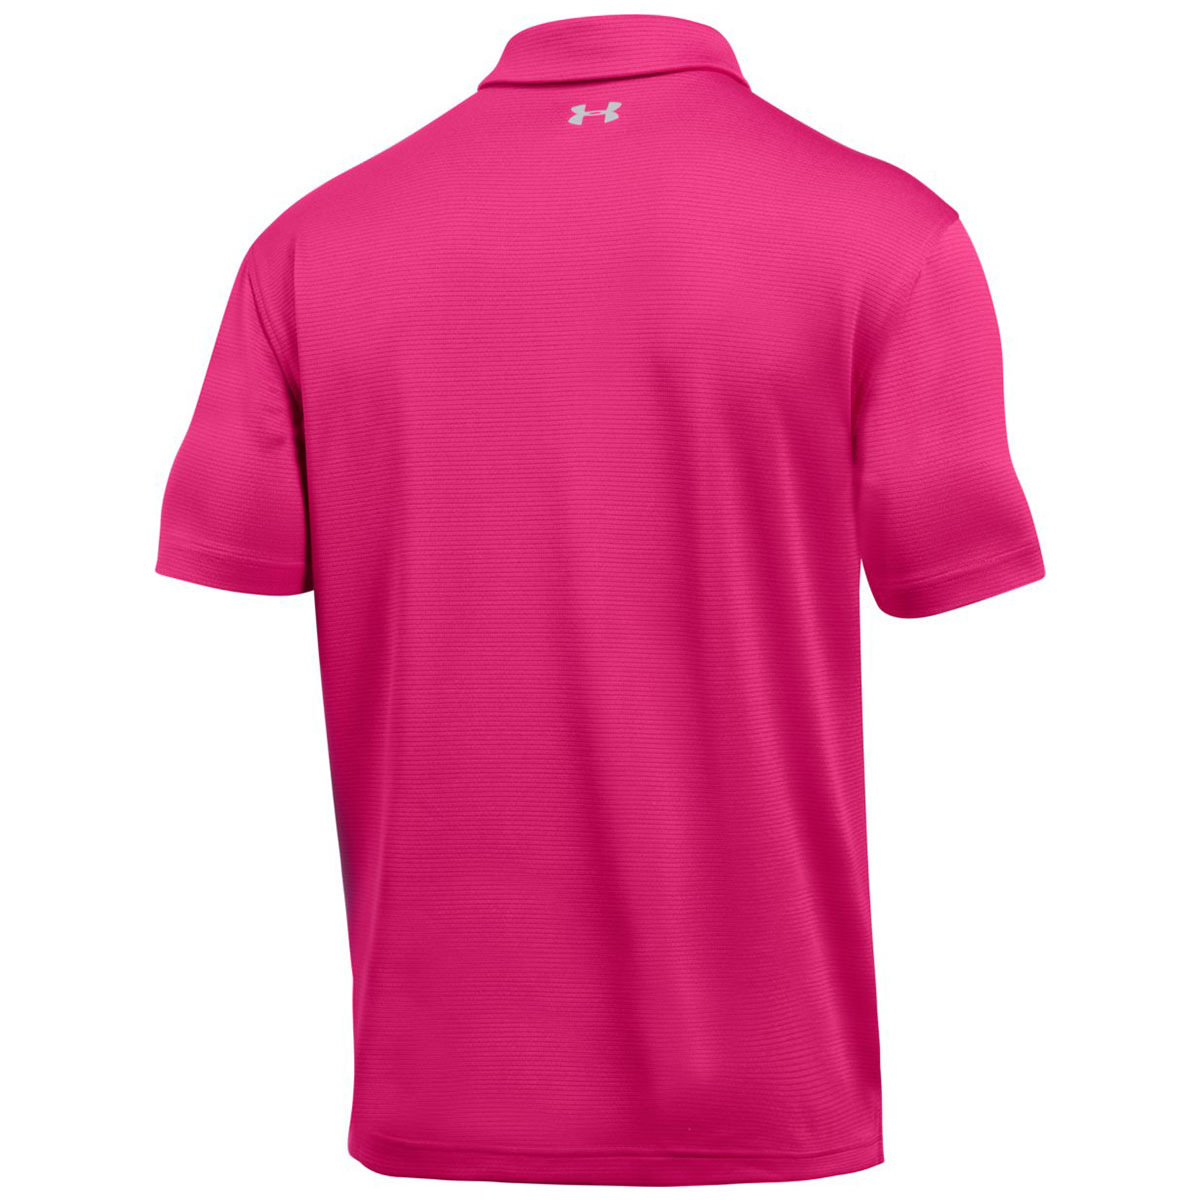 Under-Armour-Mens-2019-Golf-Tech-Wicking-Textured-Soft-Light-Polo-Shirt thumbnail 85